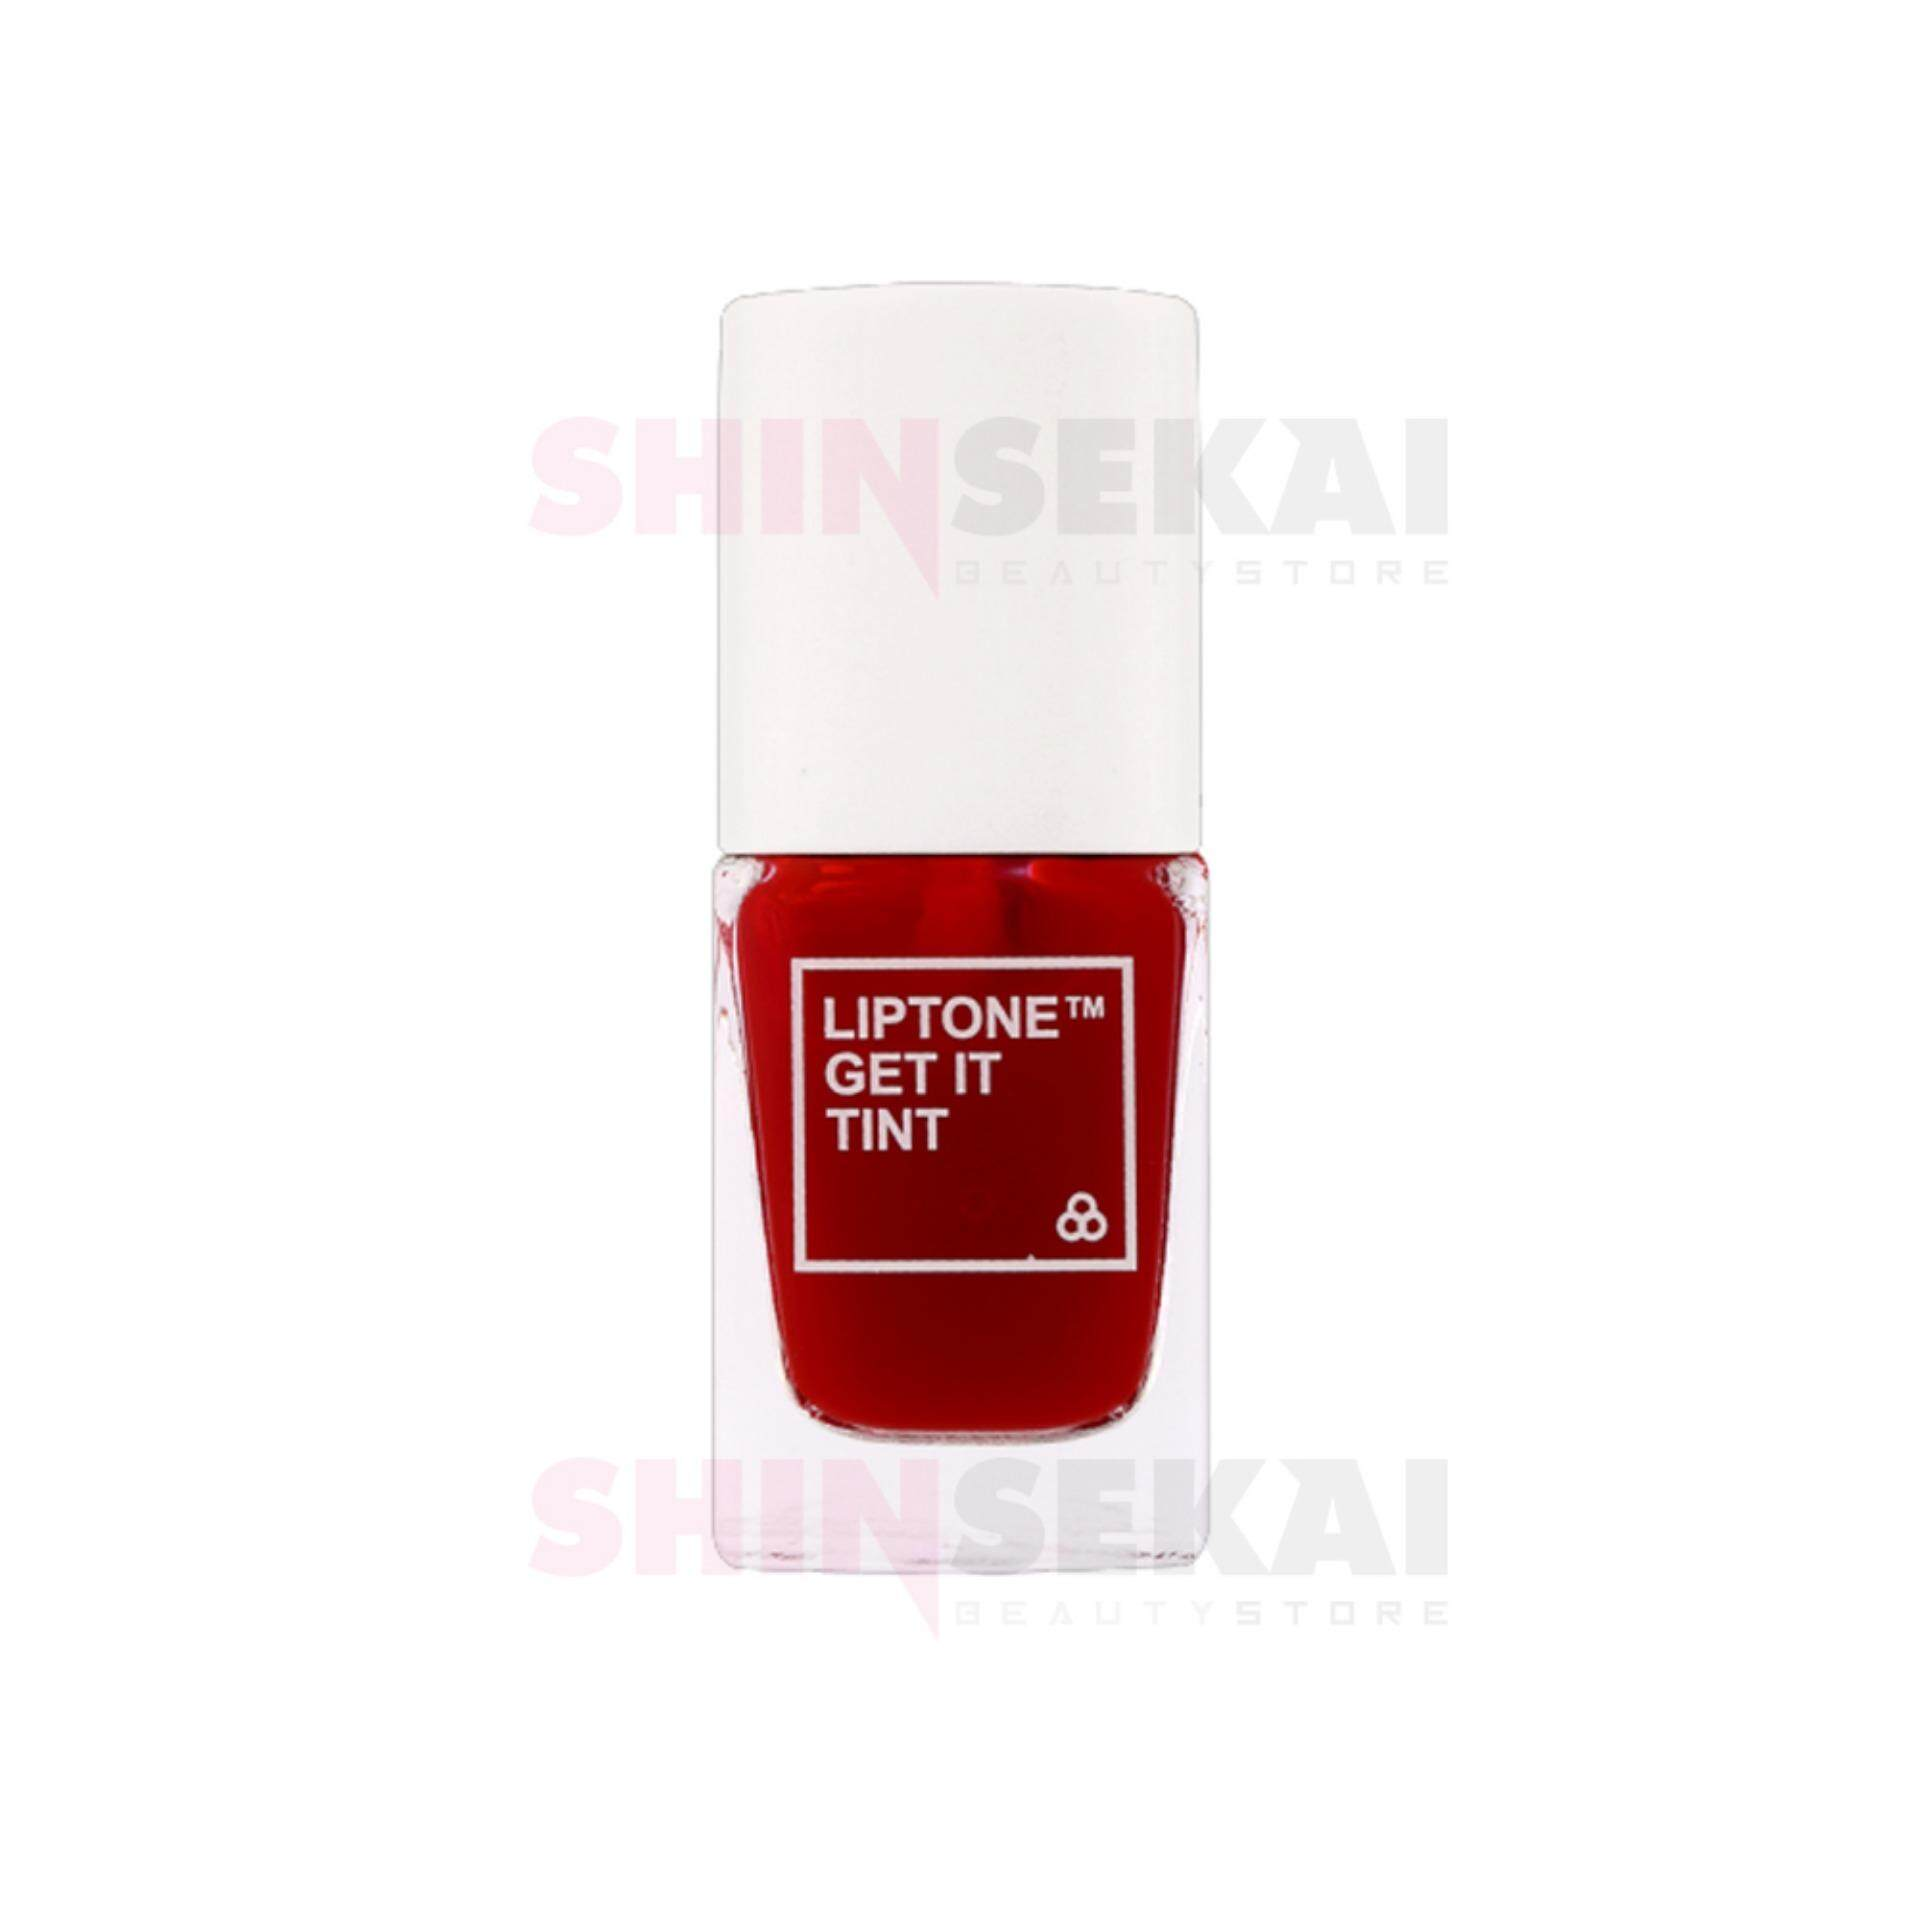 Tonymoly Perfume Products With Best Price In Malaysia Tony Moly Tint Liptint Delight Original Korea Liptone Get It 95g 04 Hot Red